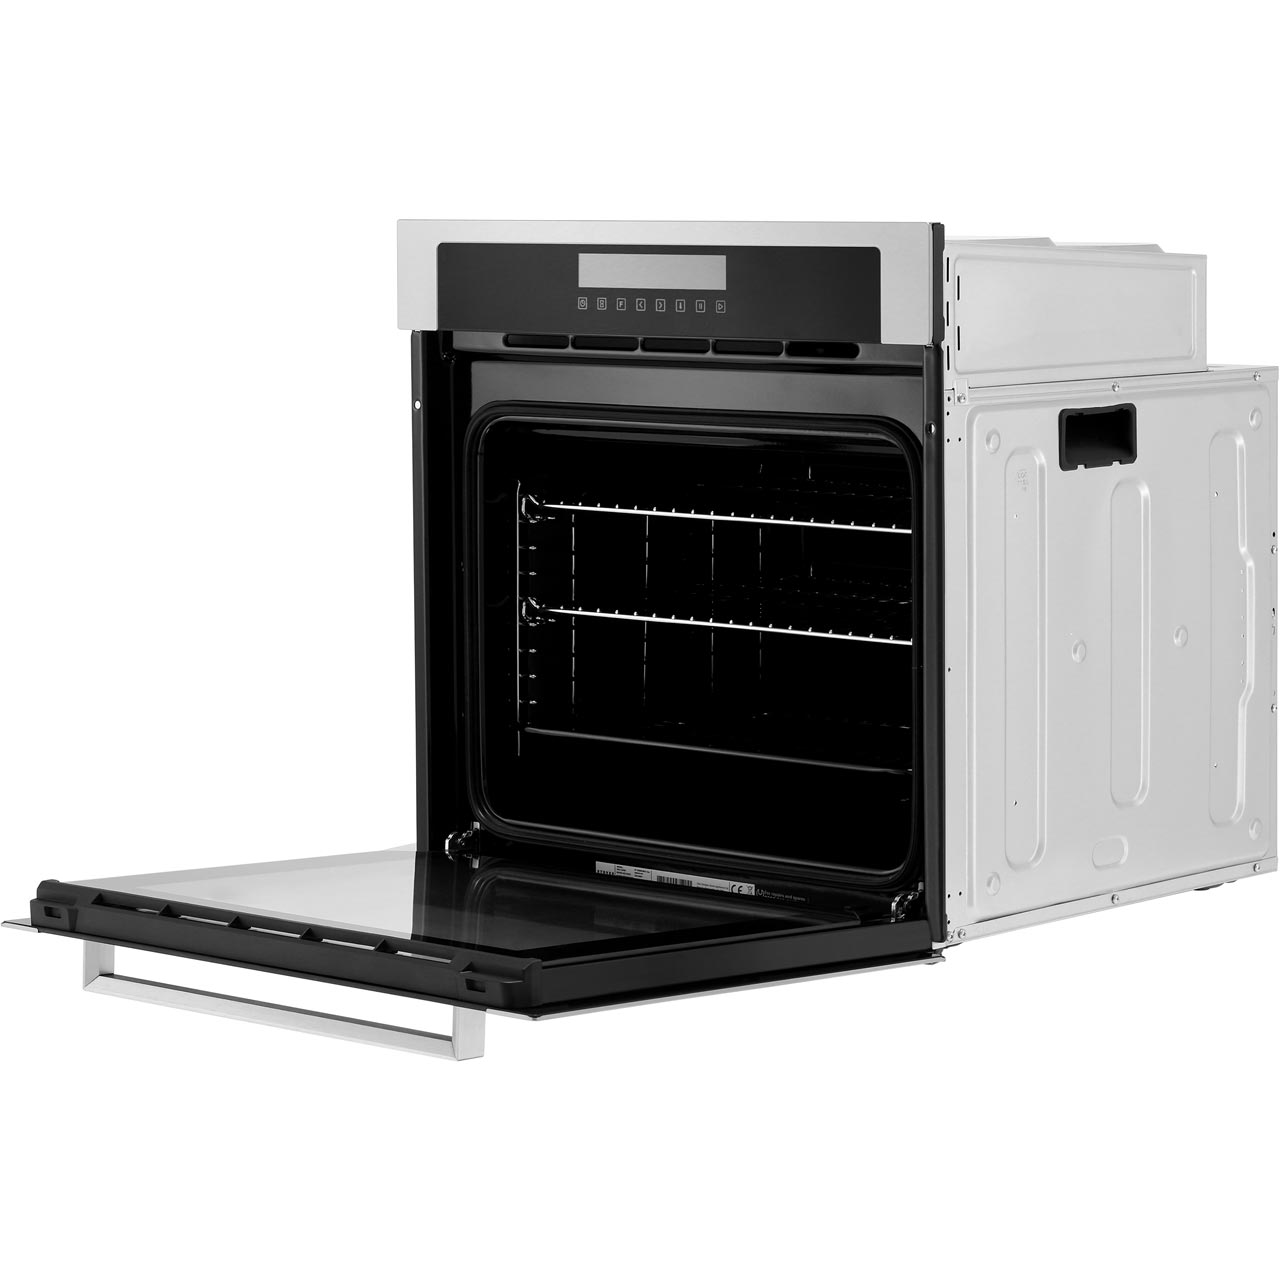 Stoves SEB602MFC Built In Electric Single Oven - Black - A Rated